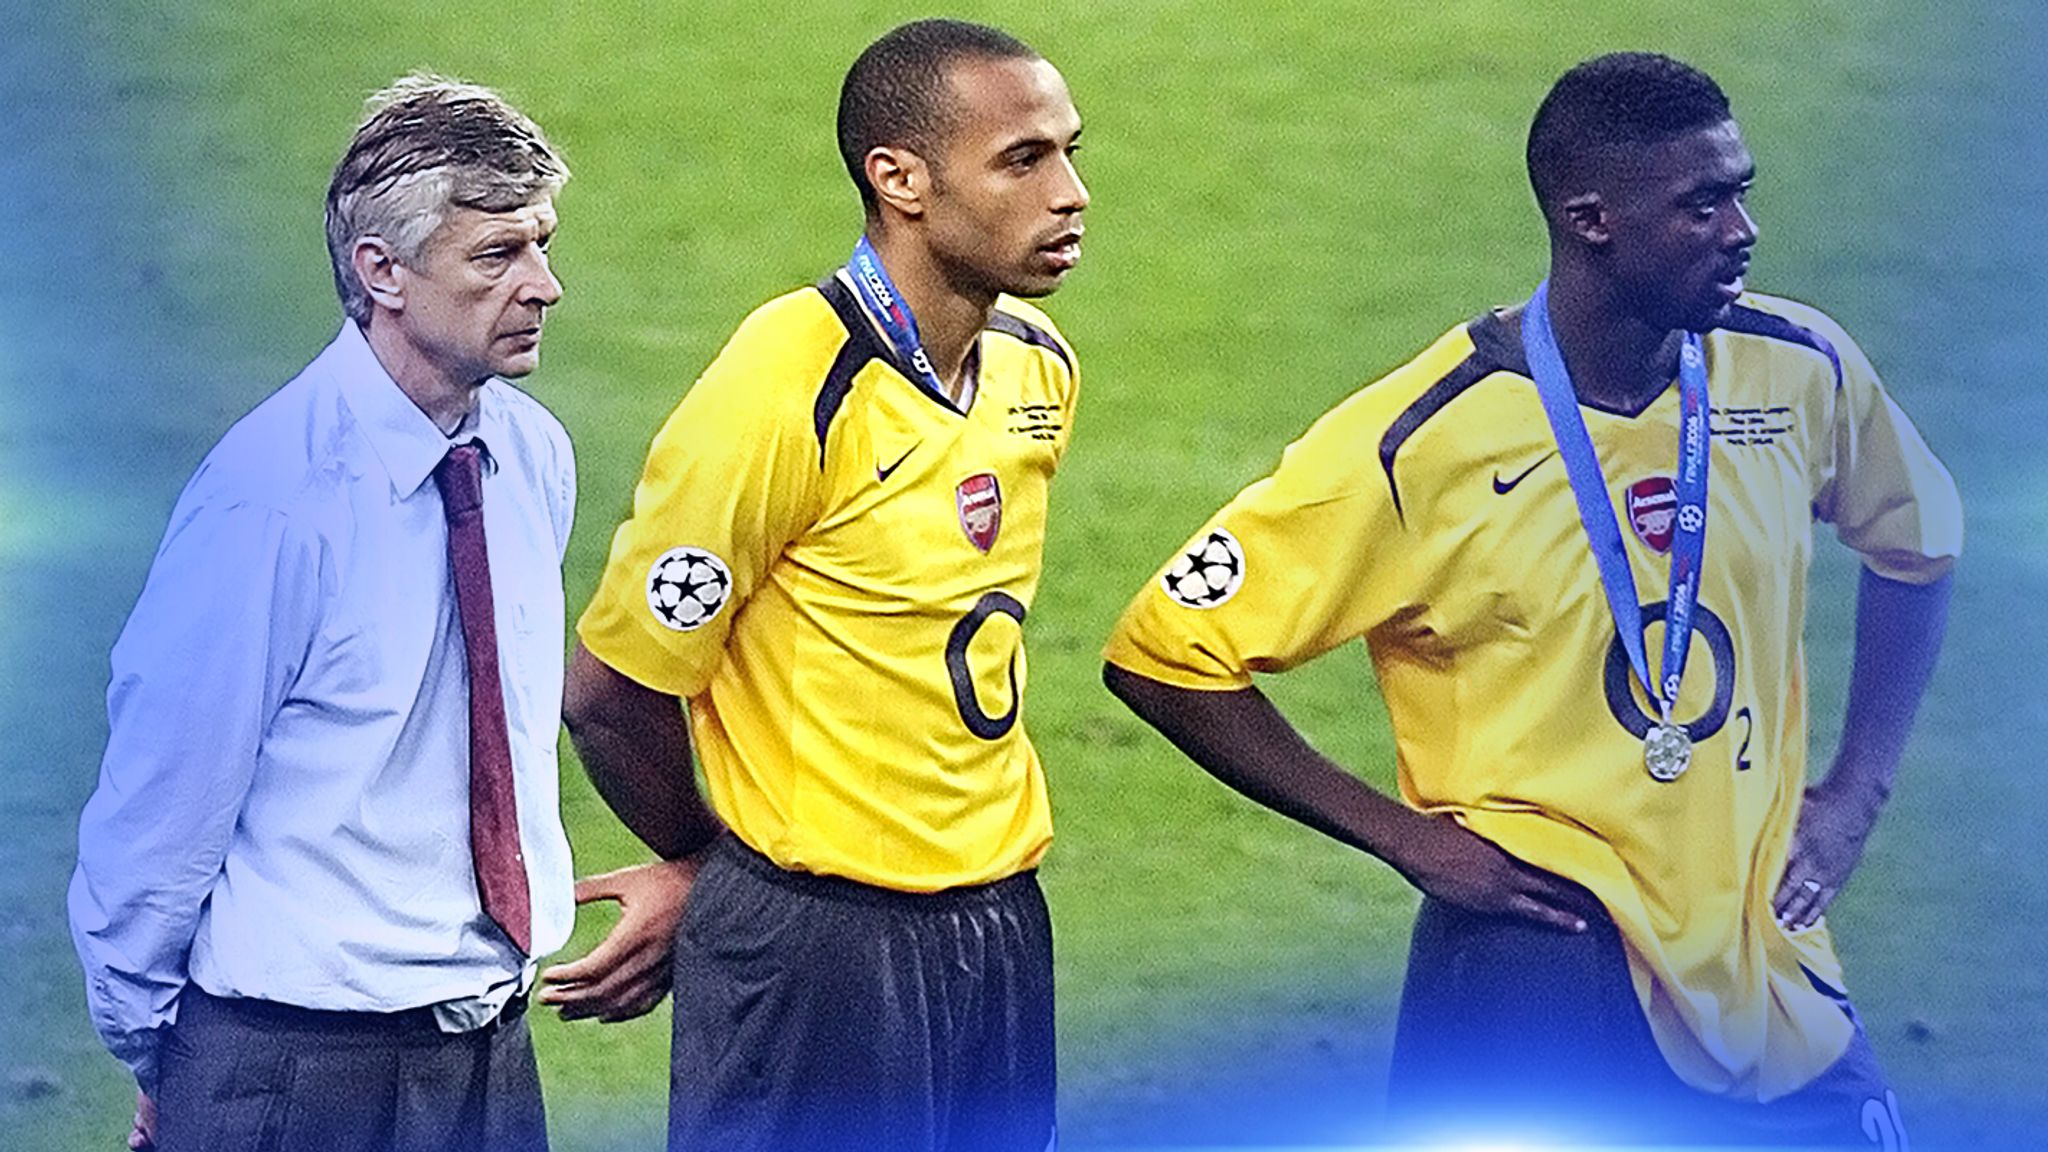 arsene wenger s arsenal still showing scars from 2006 champions league final defeat football news sky sports 2006 champions league final defeat